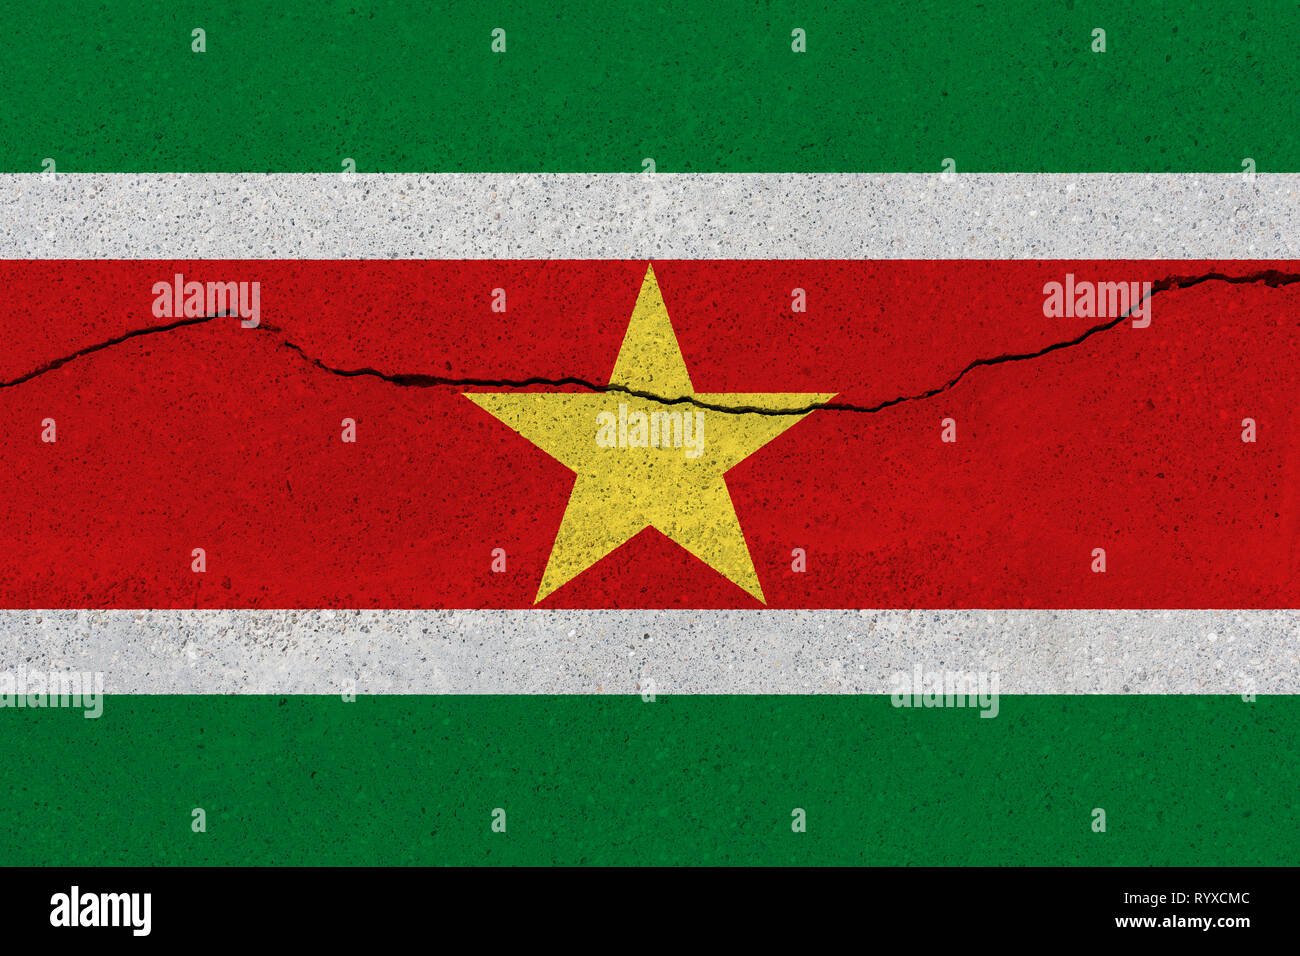 Suriname flag on concrete wall with crack. Patriotic grunge background. National flag of Suriname - Stock Image